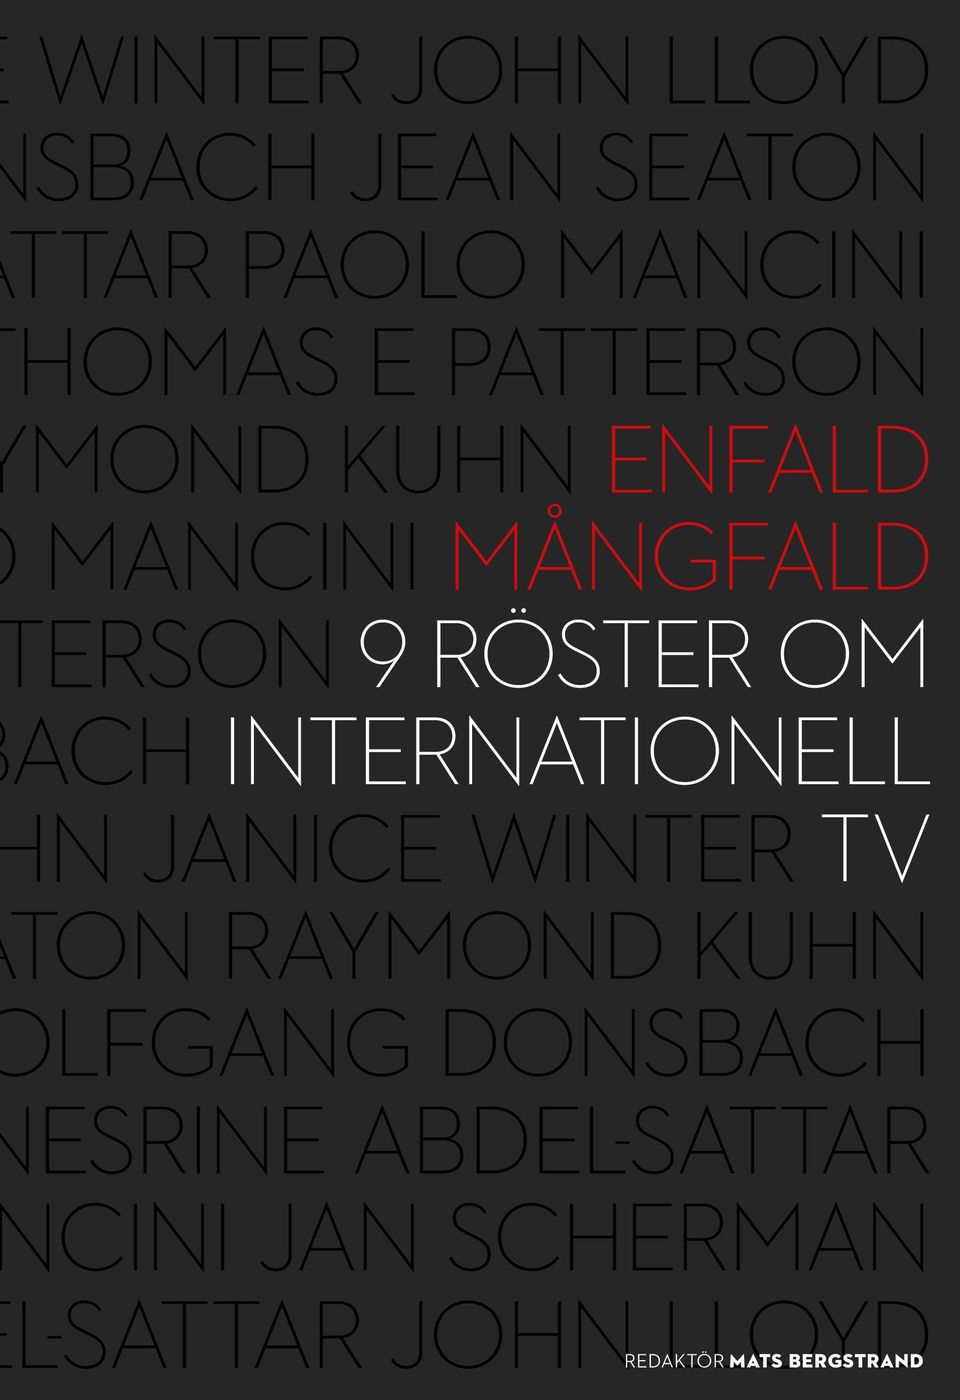 INTERNATIONELL N JANICE WINTER TV TON RAYMOND KUHN LFGANG DONSBACH